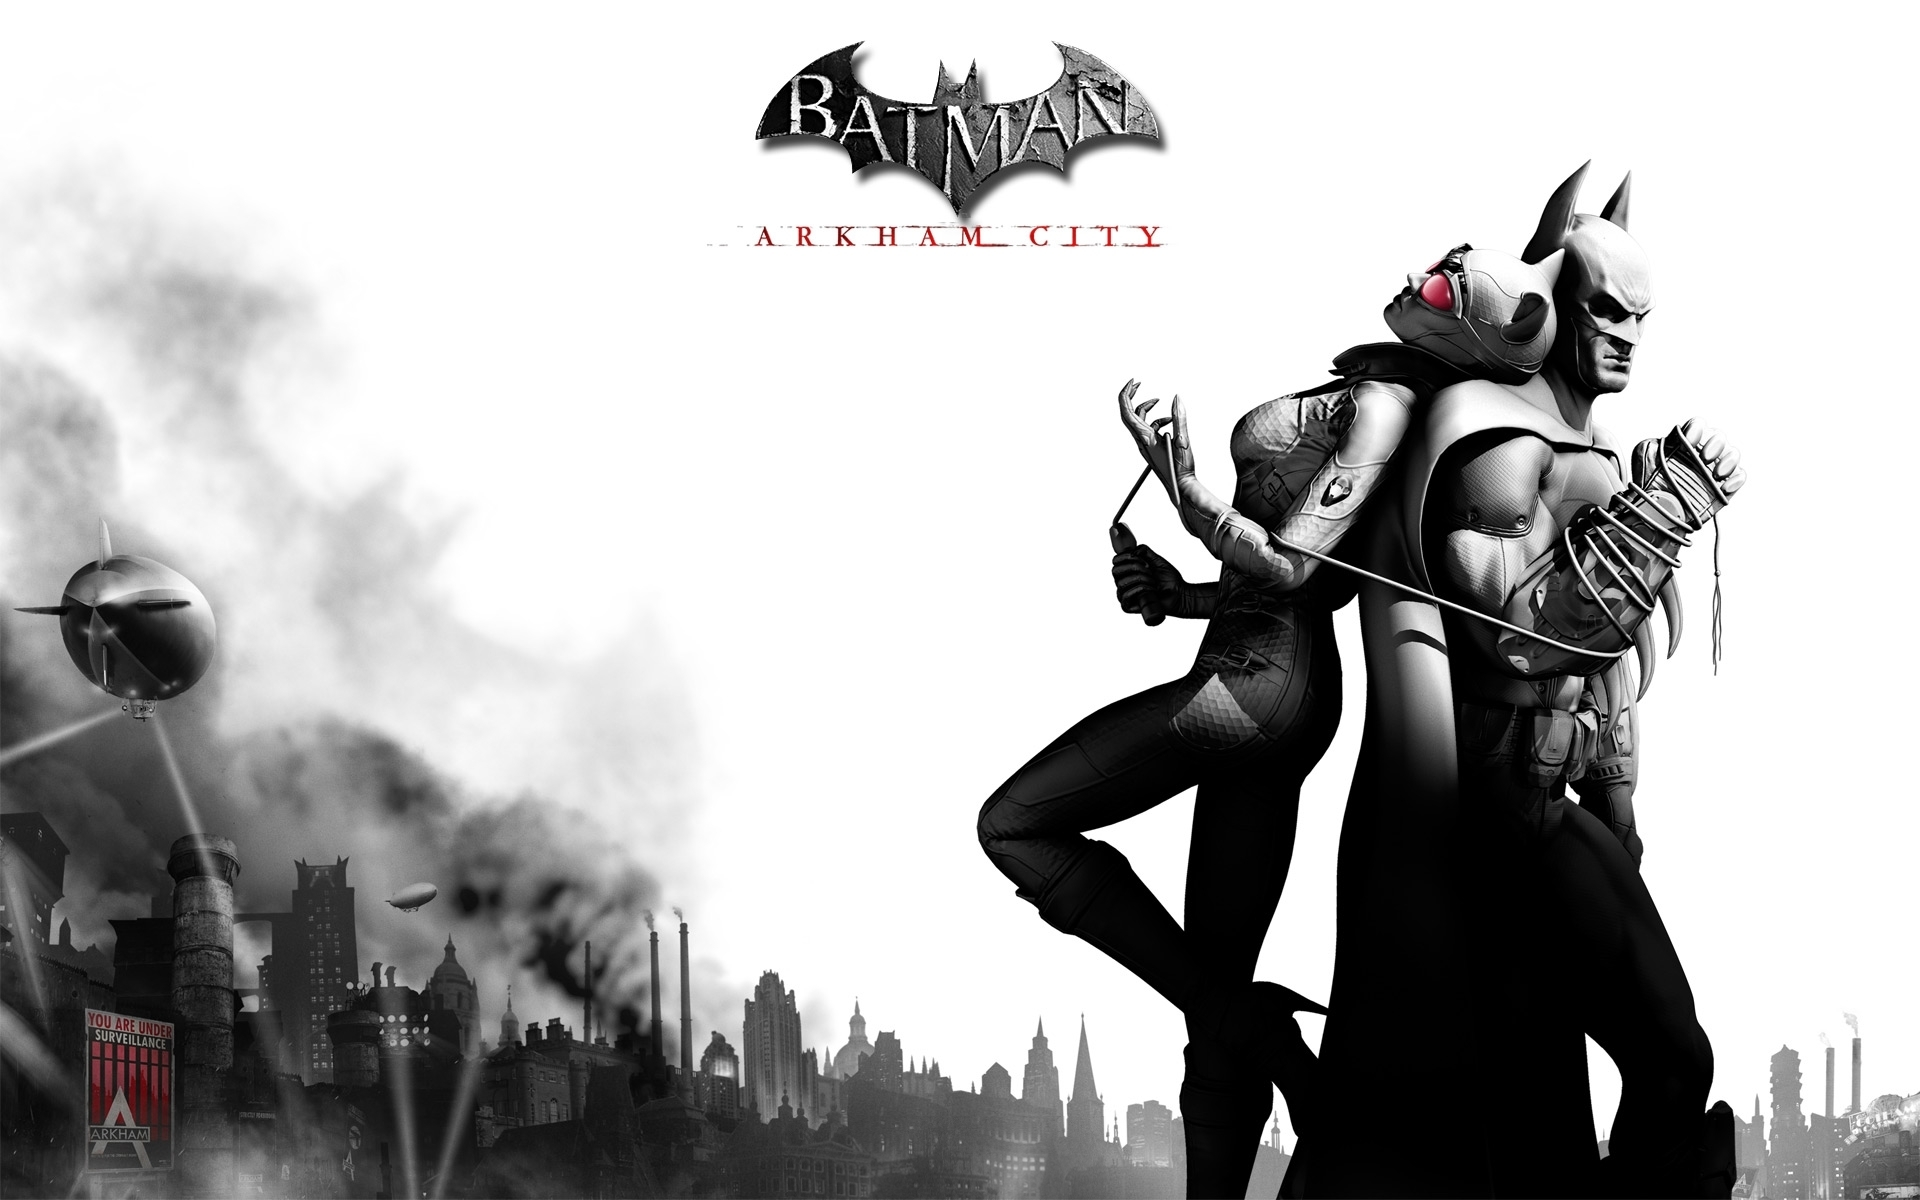 Batman Arkham Asylum 720p Anime Wallpaper 1080p Wallpaper